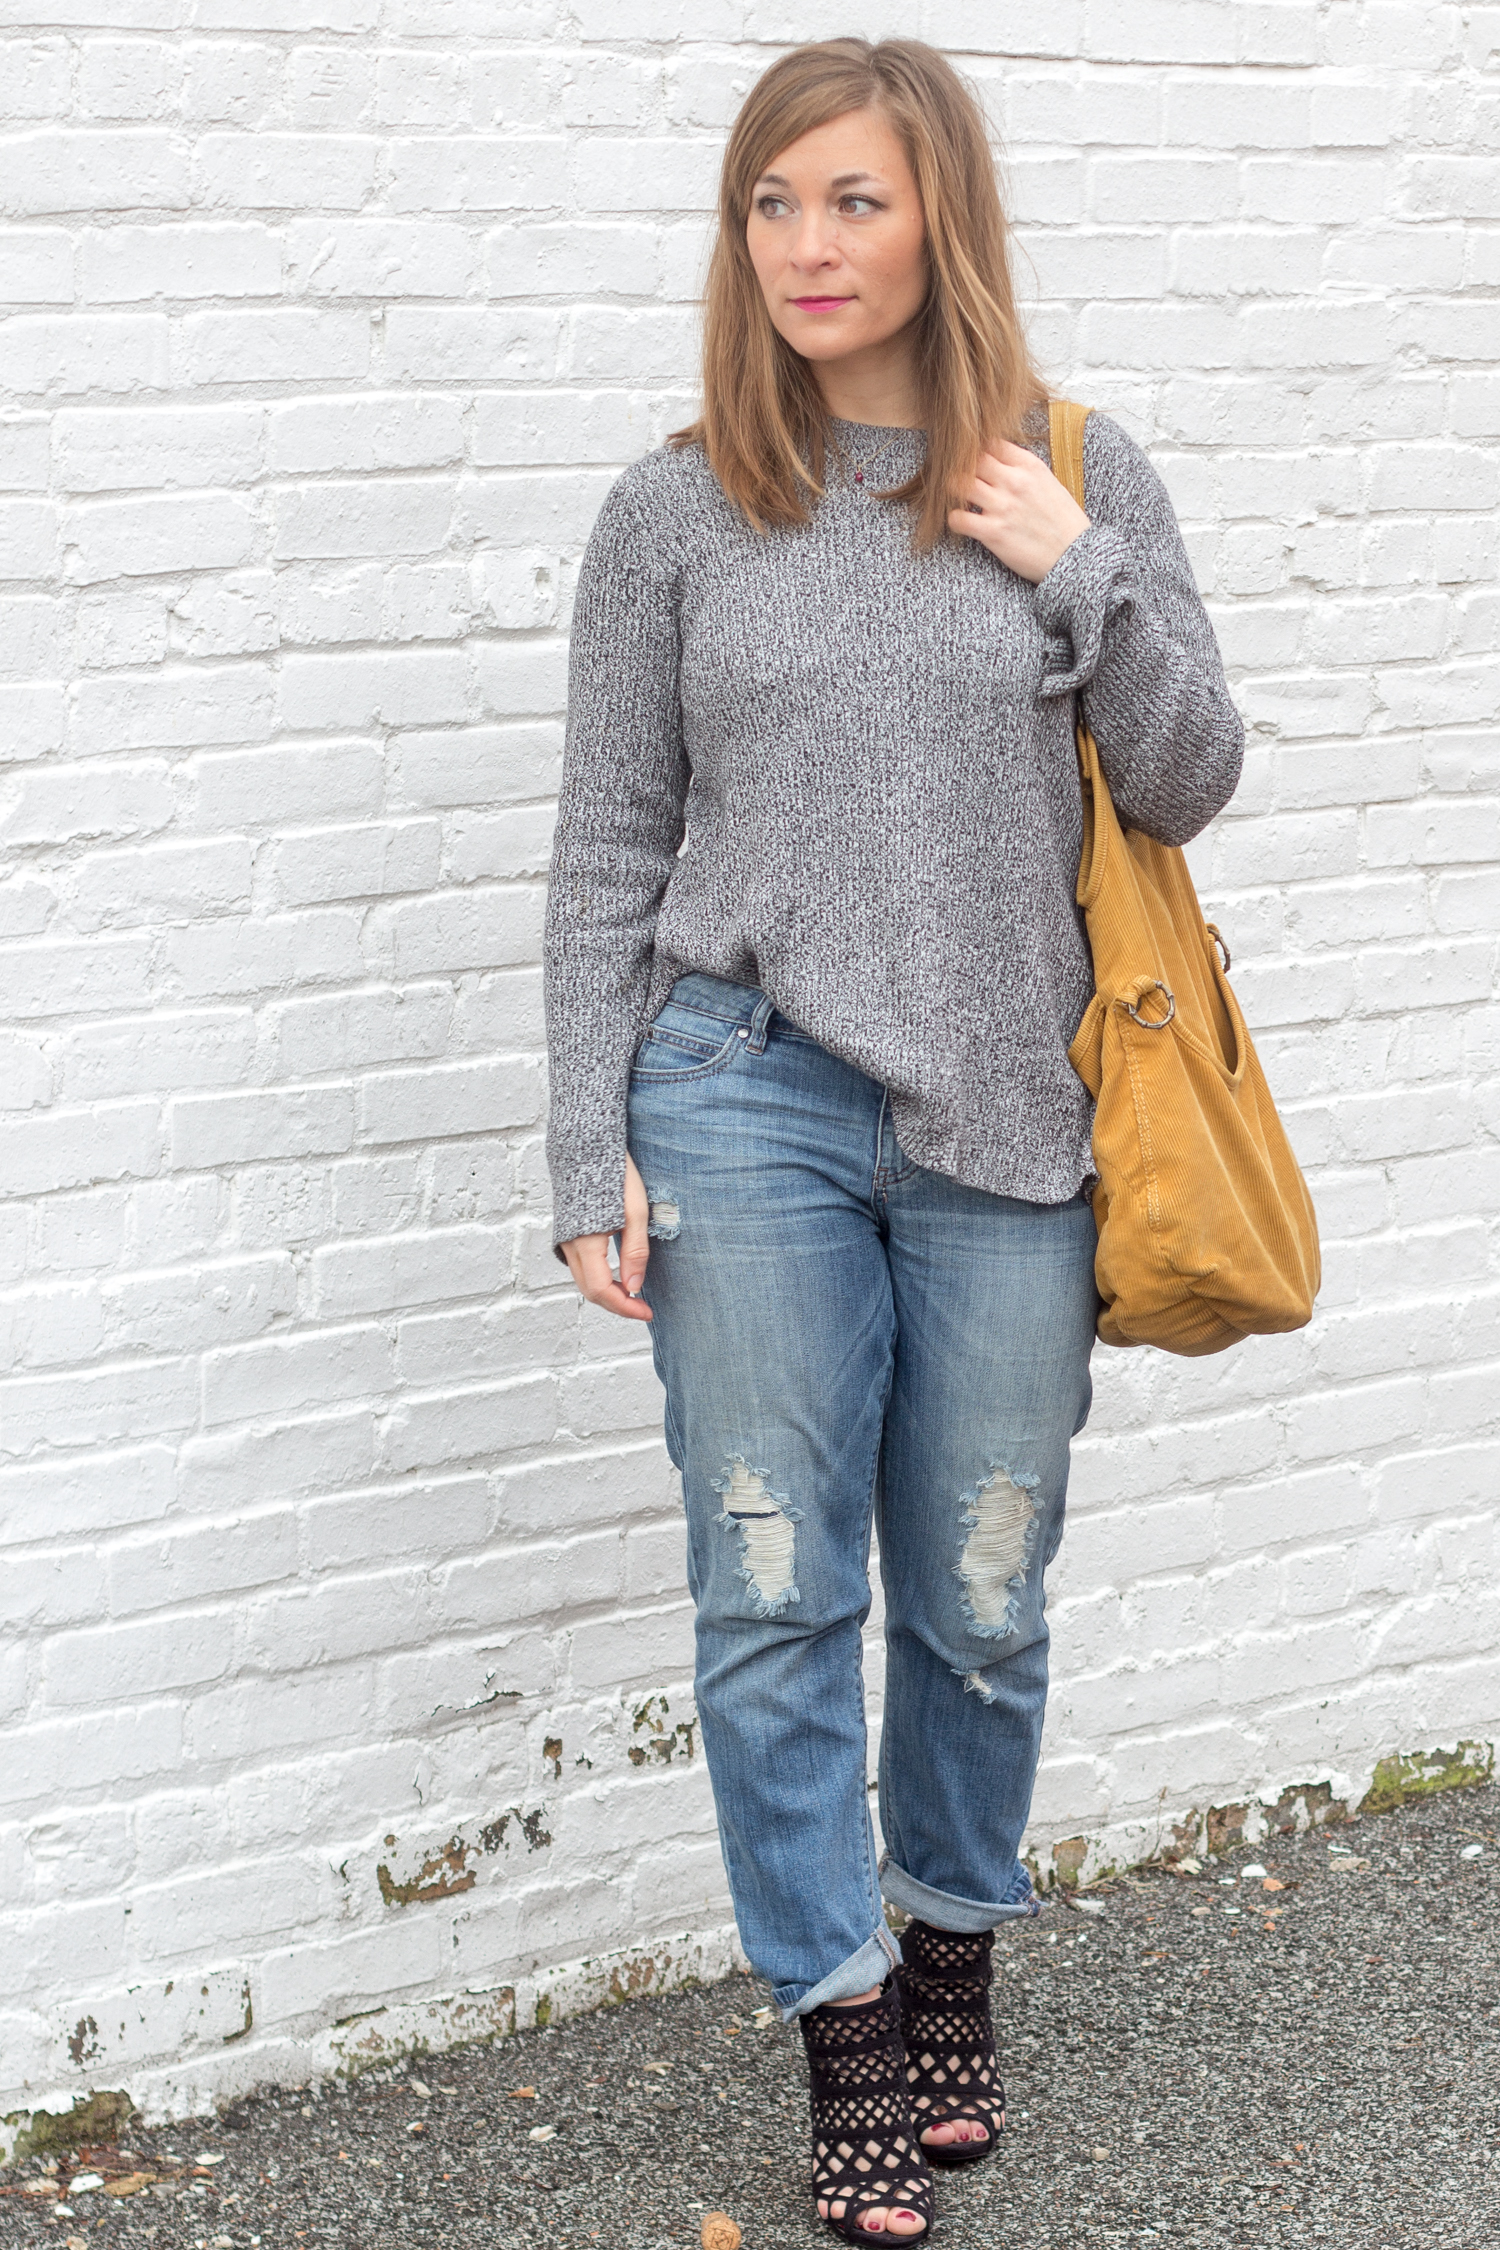 Sweaters and Jeans Outfit